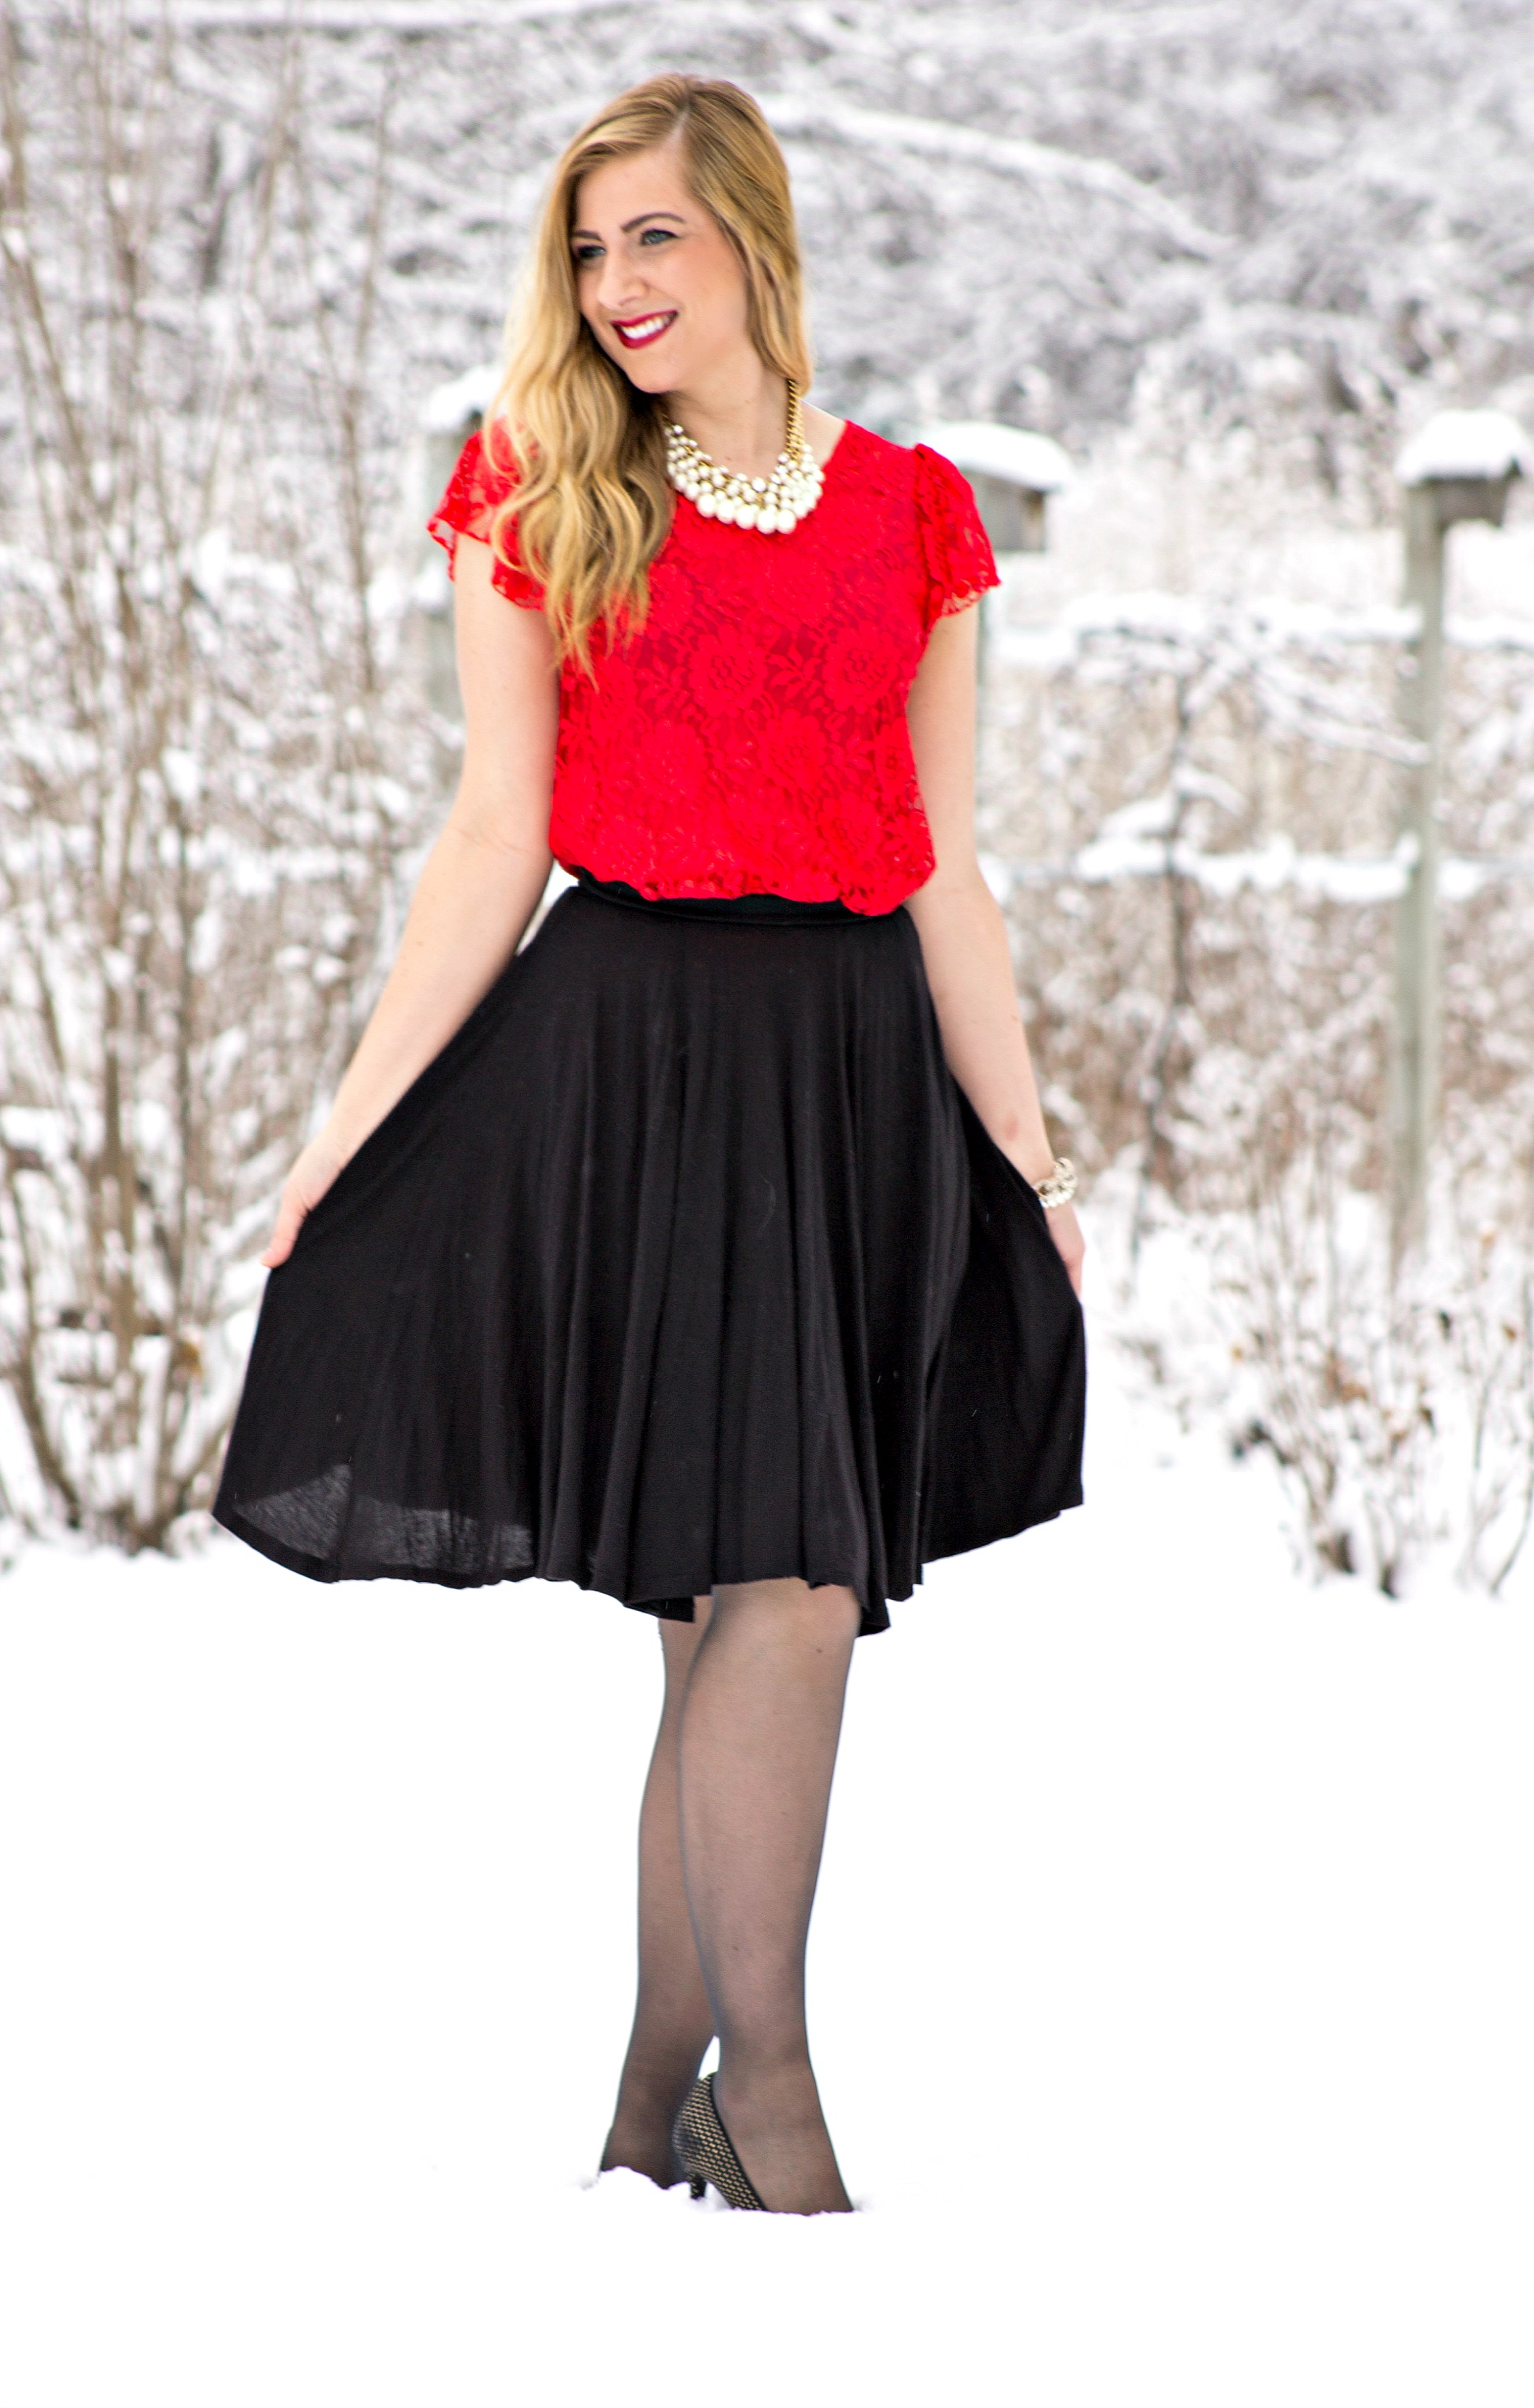 Red Lace Top + Black Skirt + Pearl Necklace